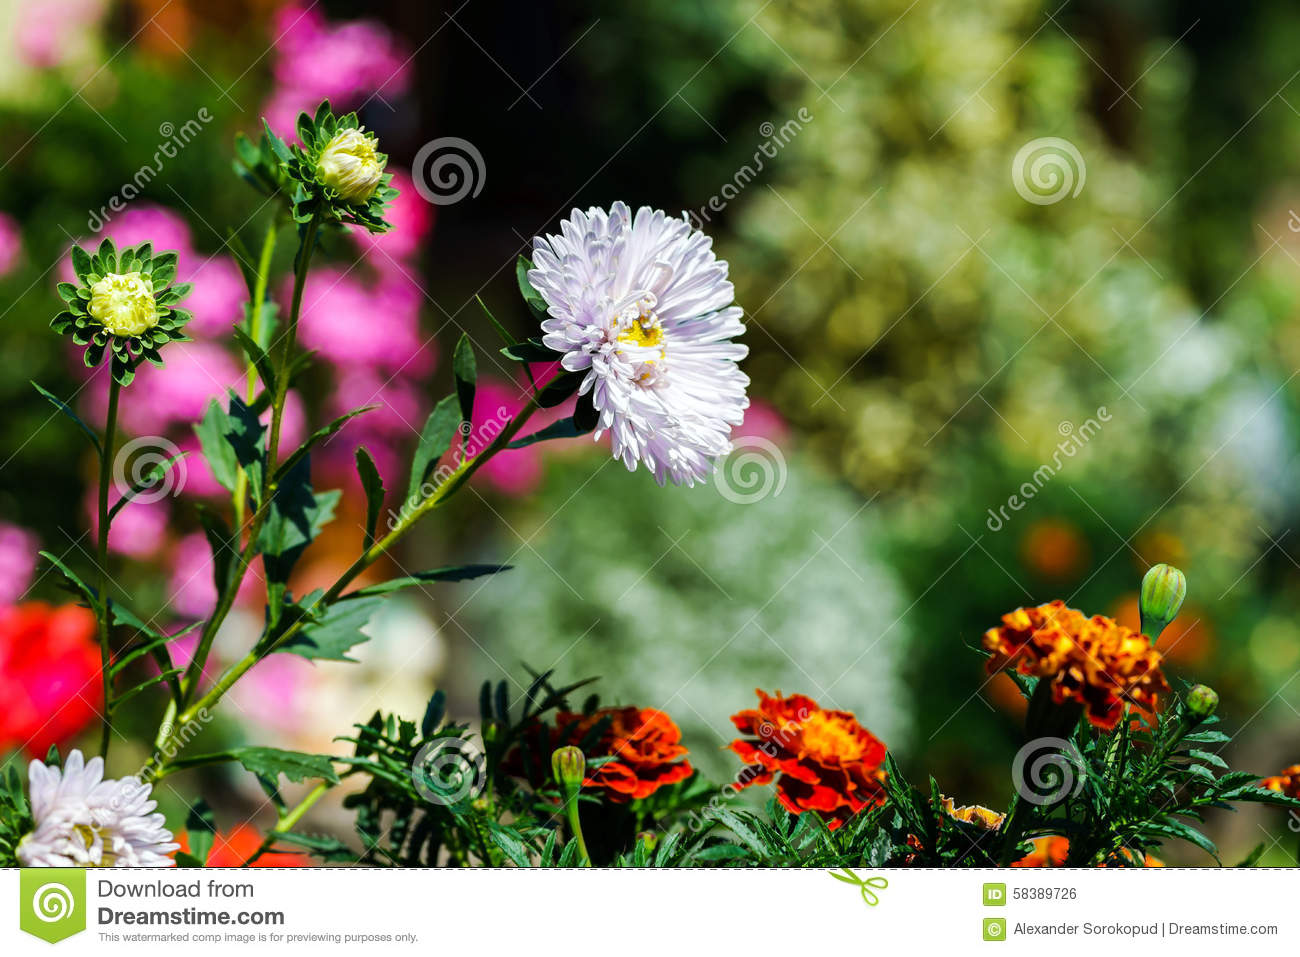 Beautiful natural gardens - Royalty Free Stock Photo